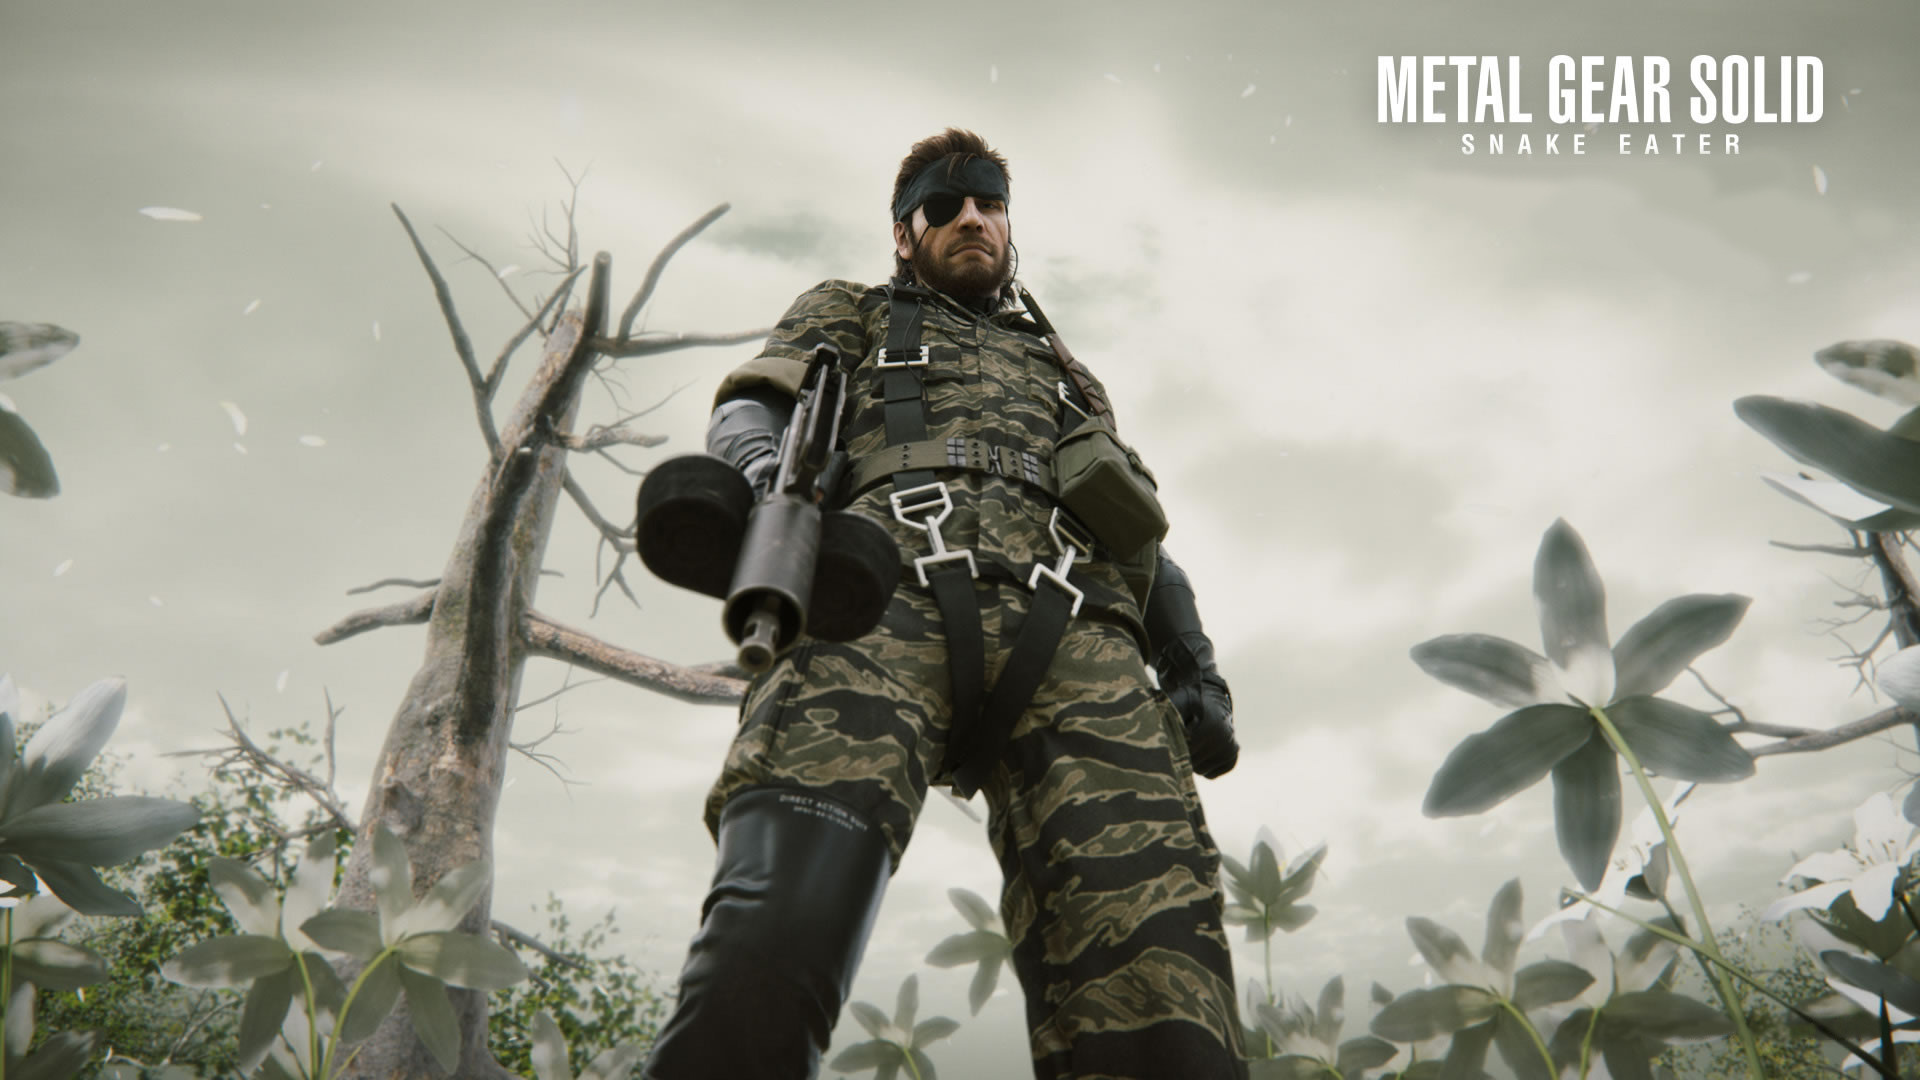 Metal Gear Solid 3 Wallpaper Wallpapertag